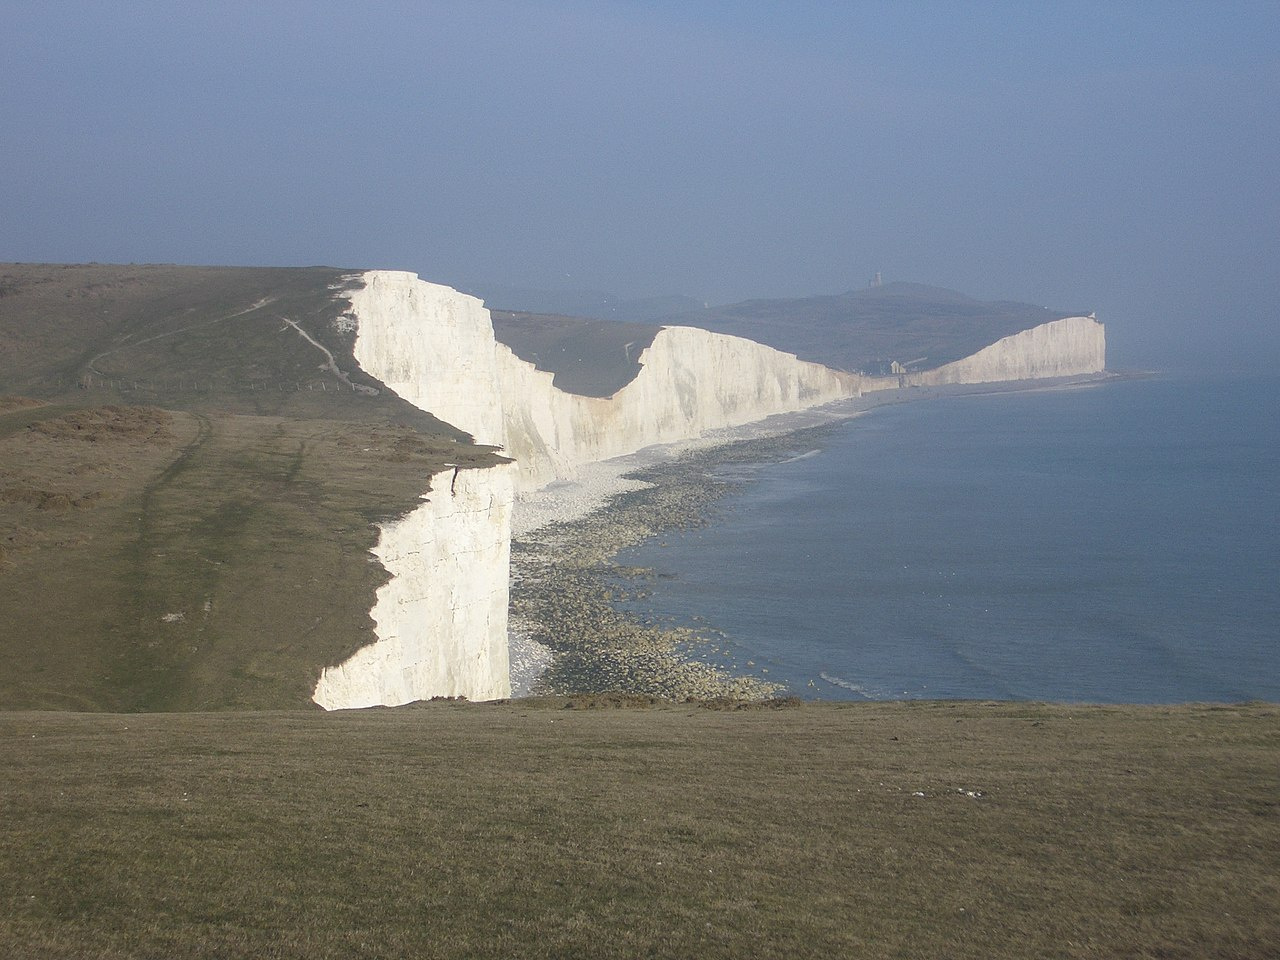 Four of the Seven Sisters cliffs